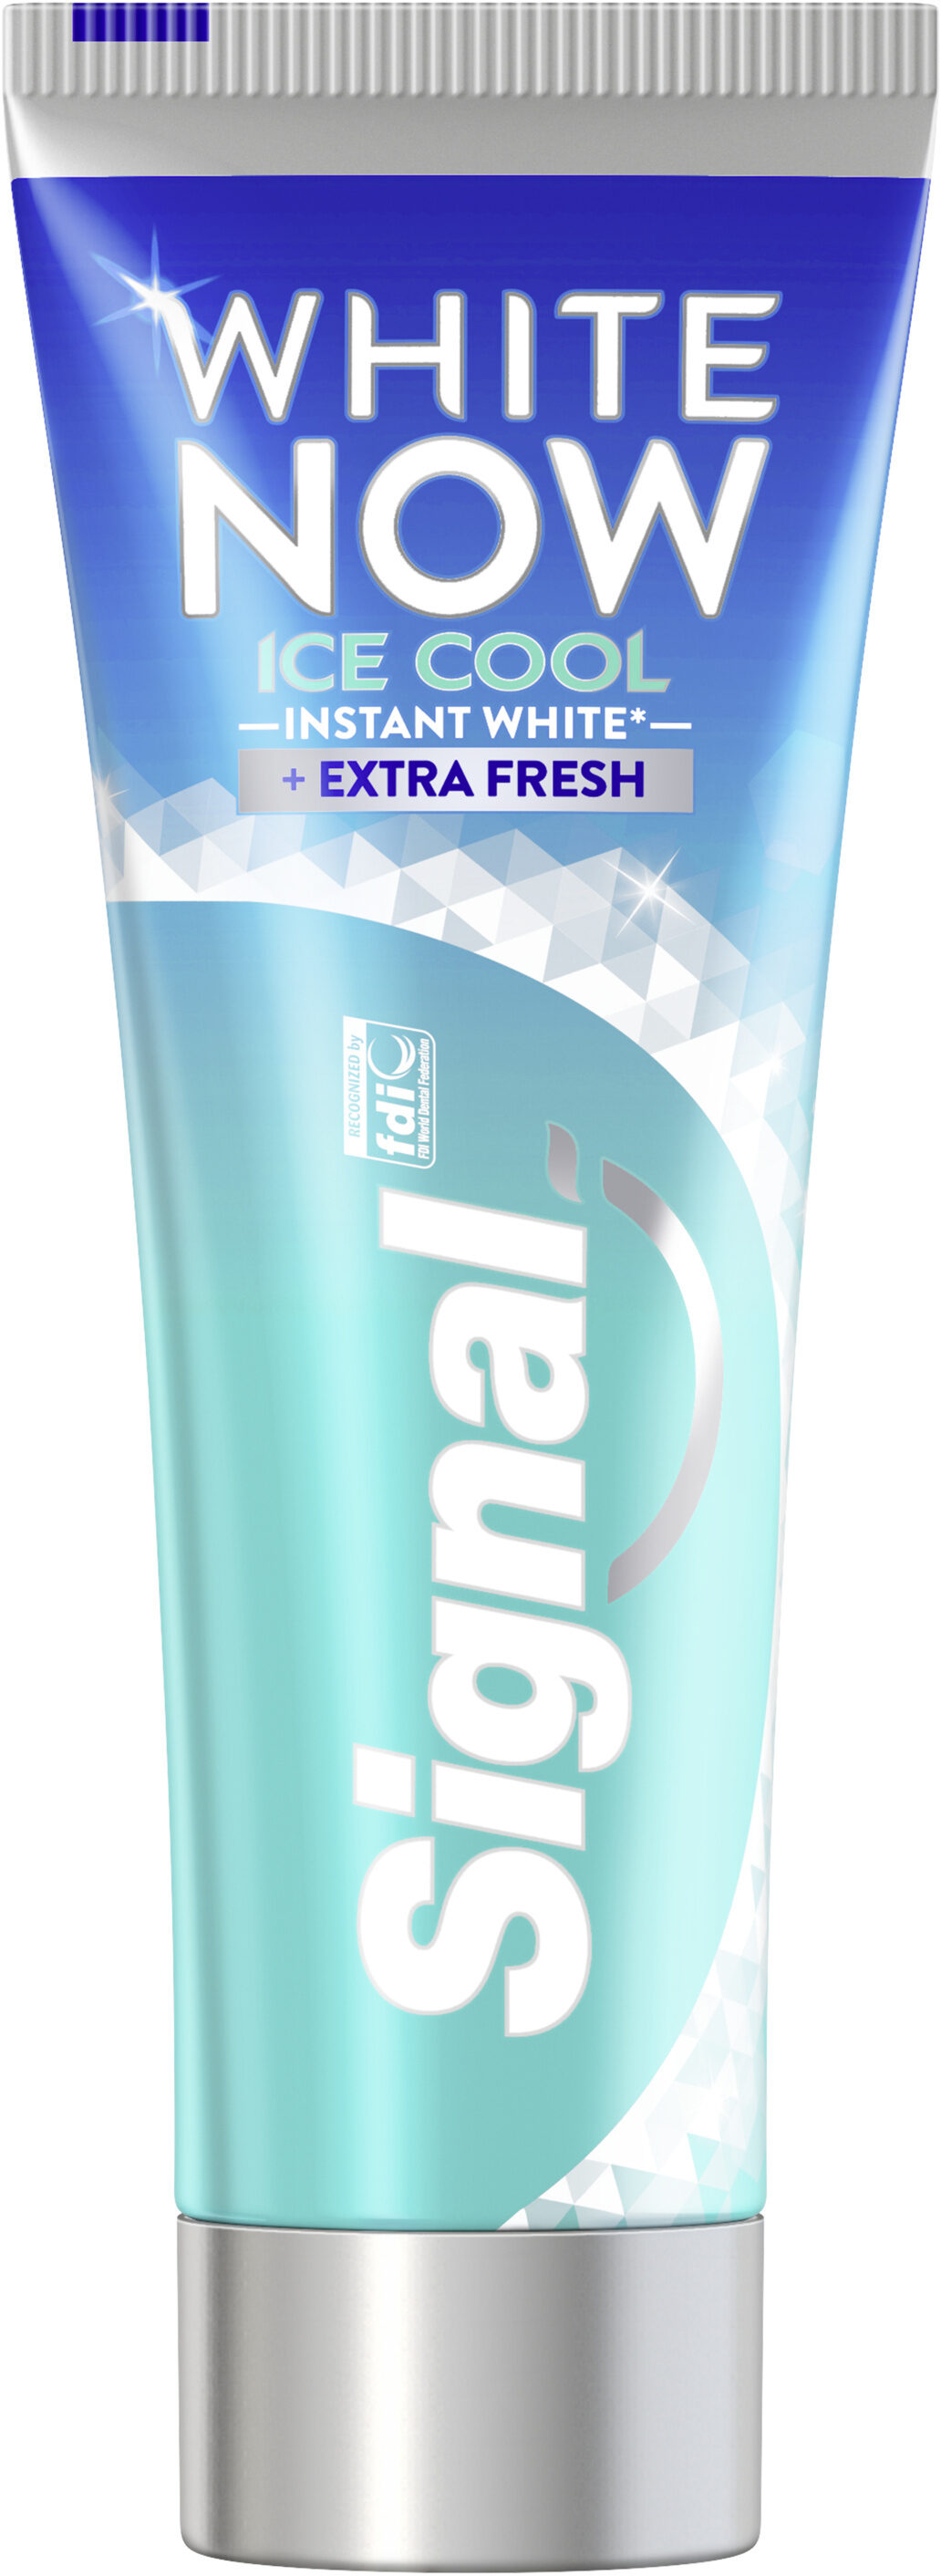 Signal Dentifrice Blancheur Instantanée ICE COOL - Product - fr